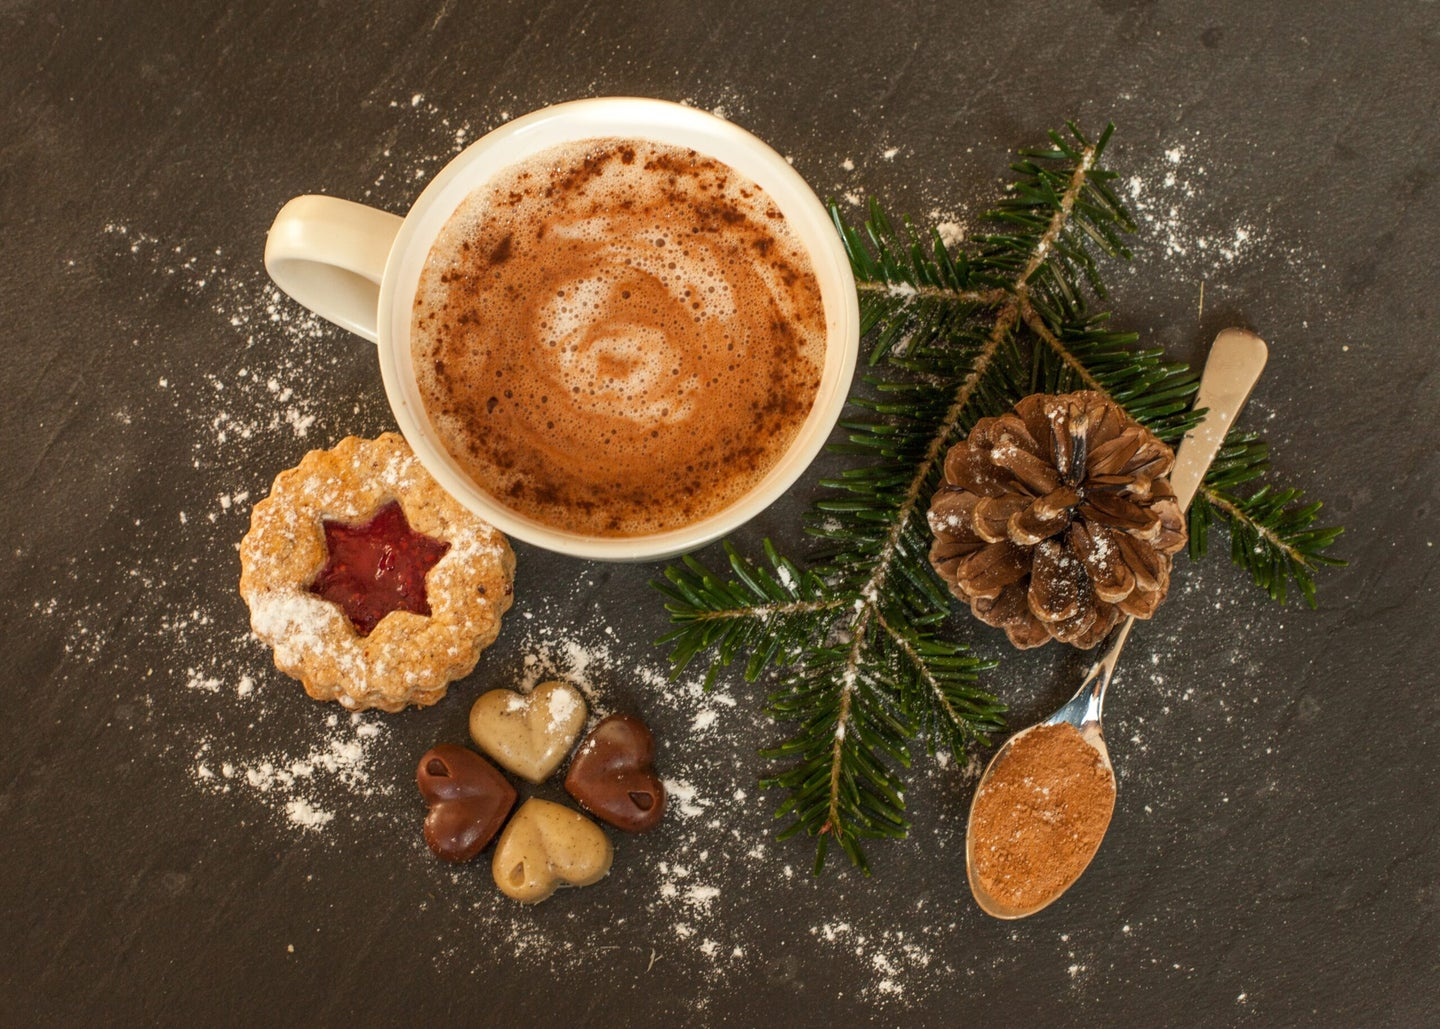 Instant hot cocoa is a starchy disaster. Here's how to make your own.